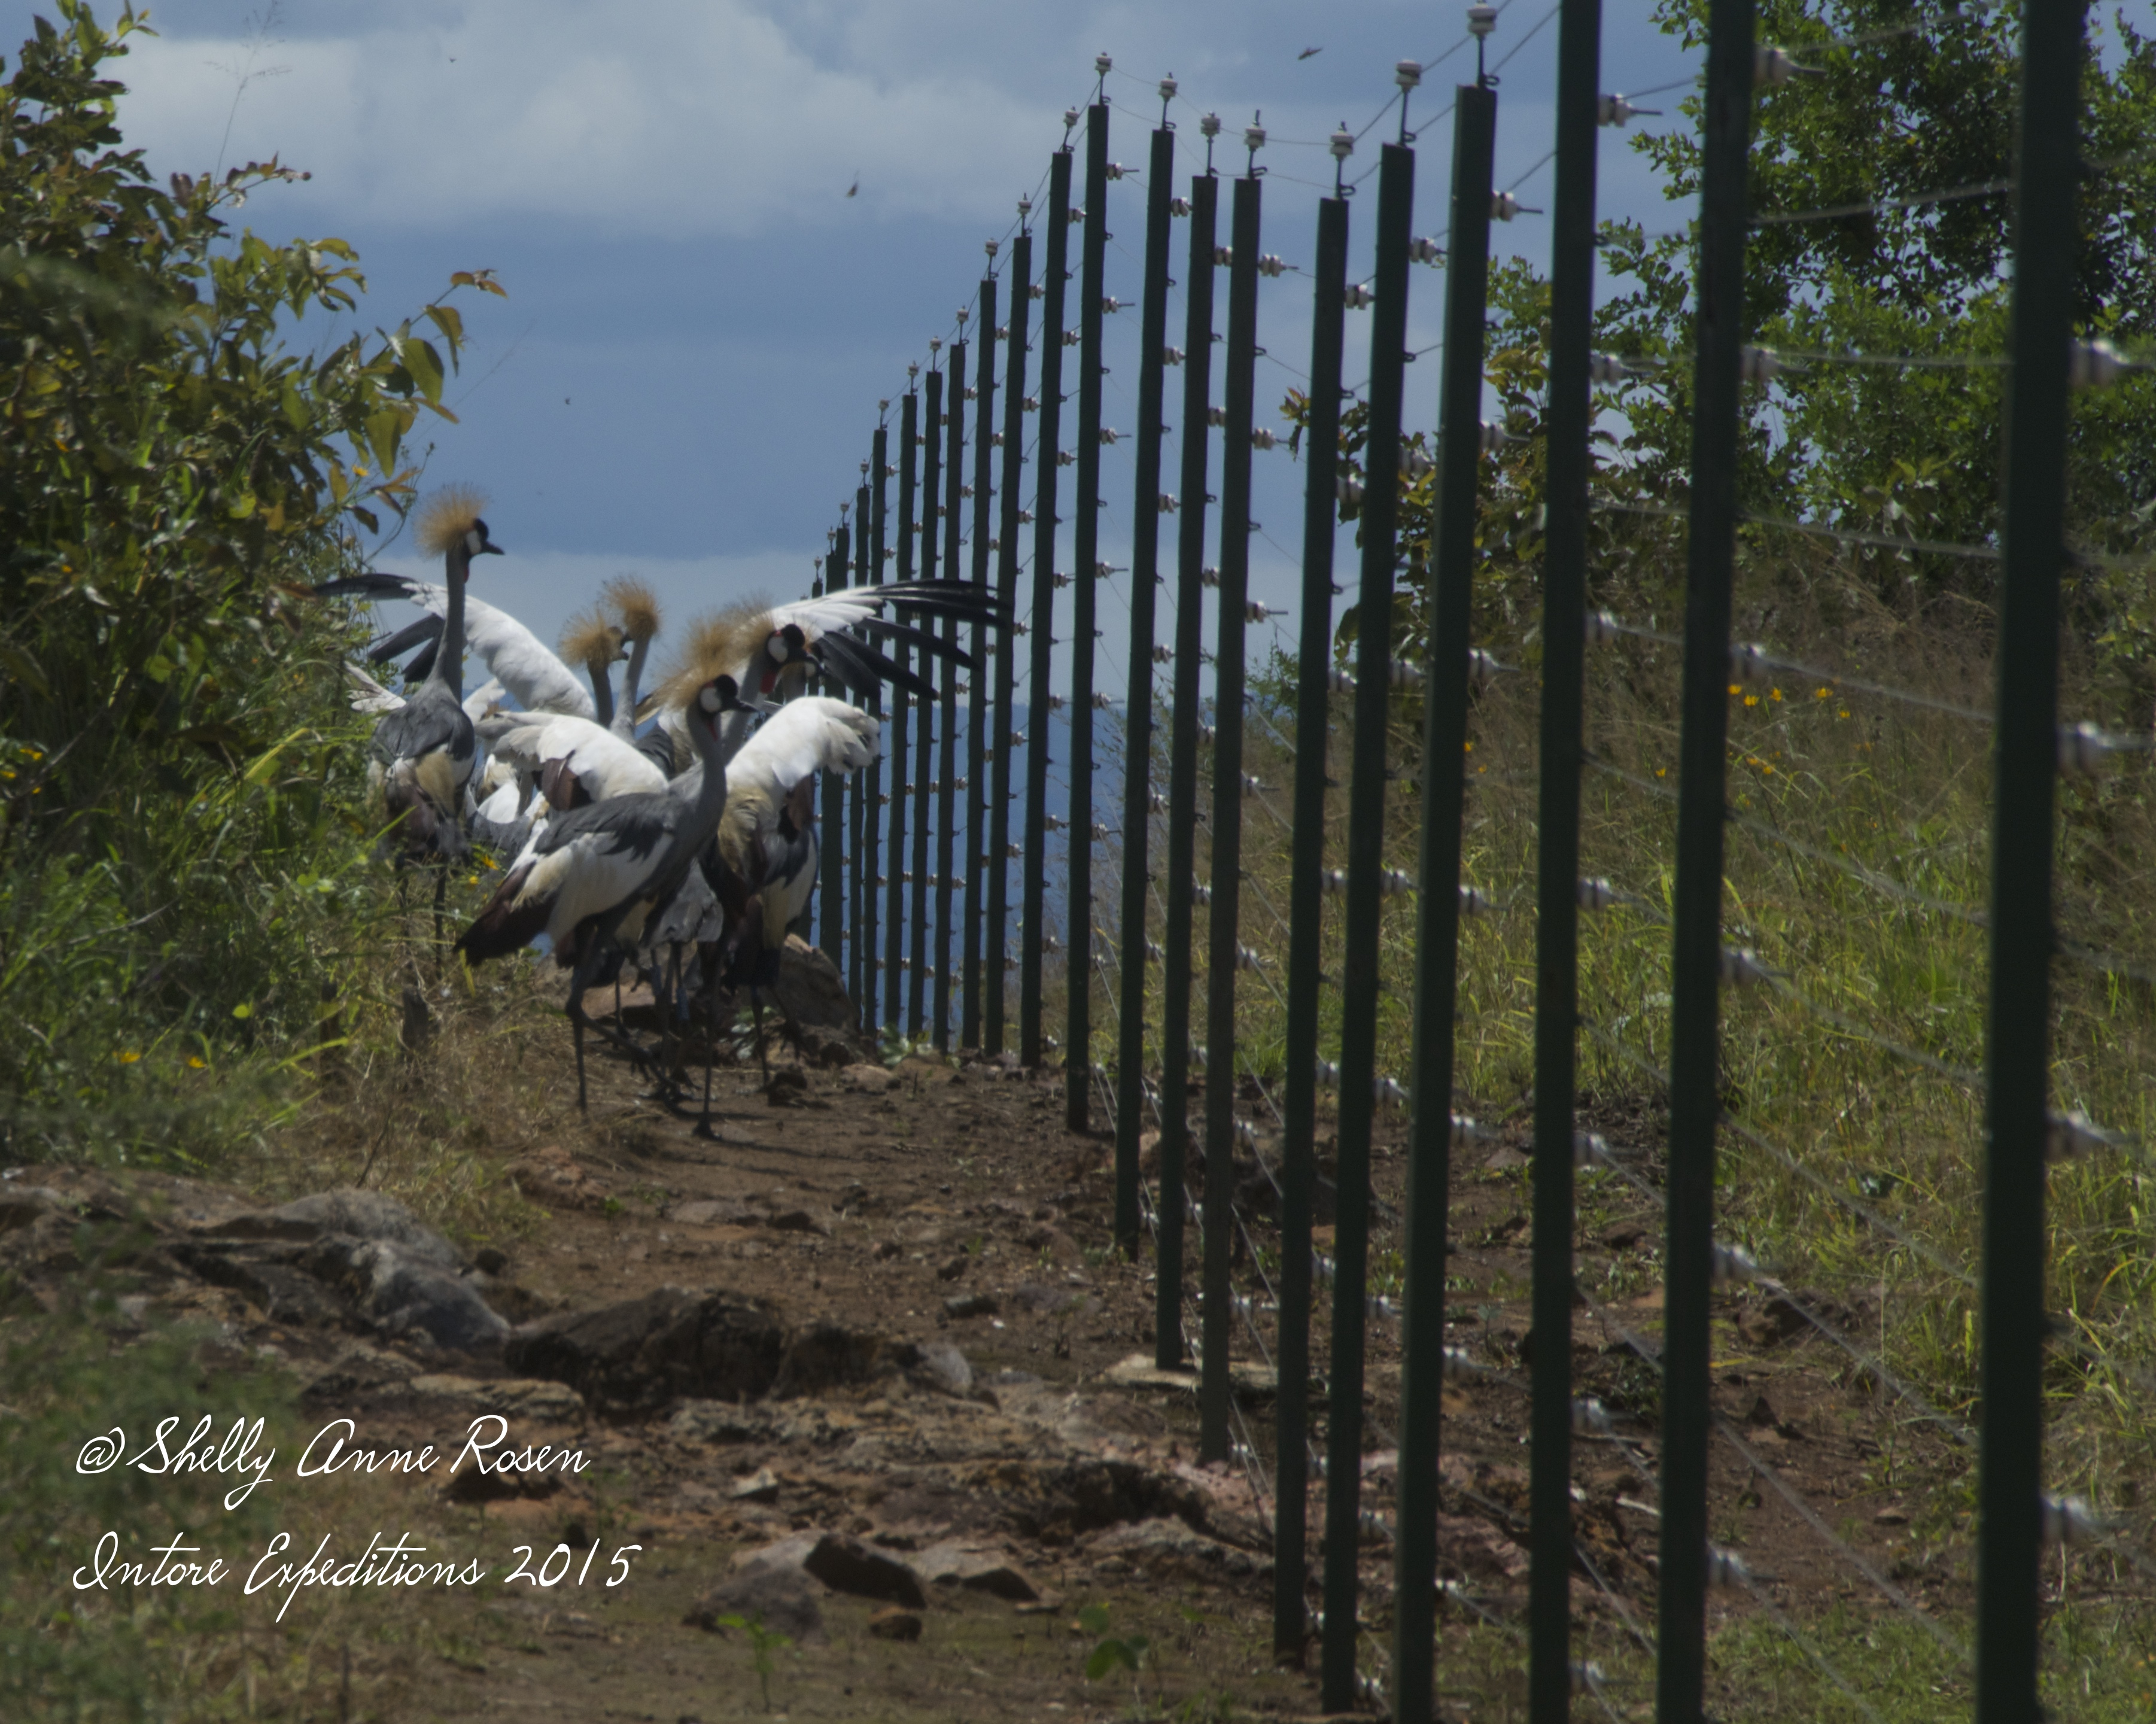 Grey Crested Crane relocation project - Akagera National Park